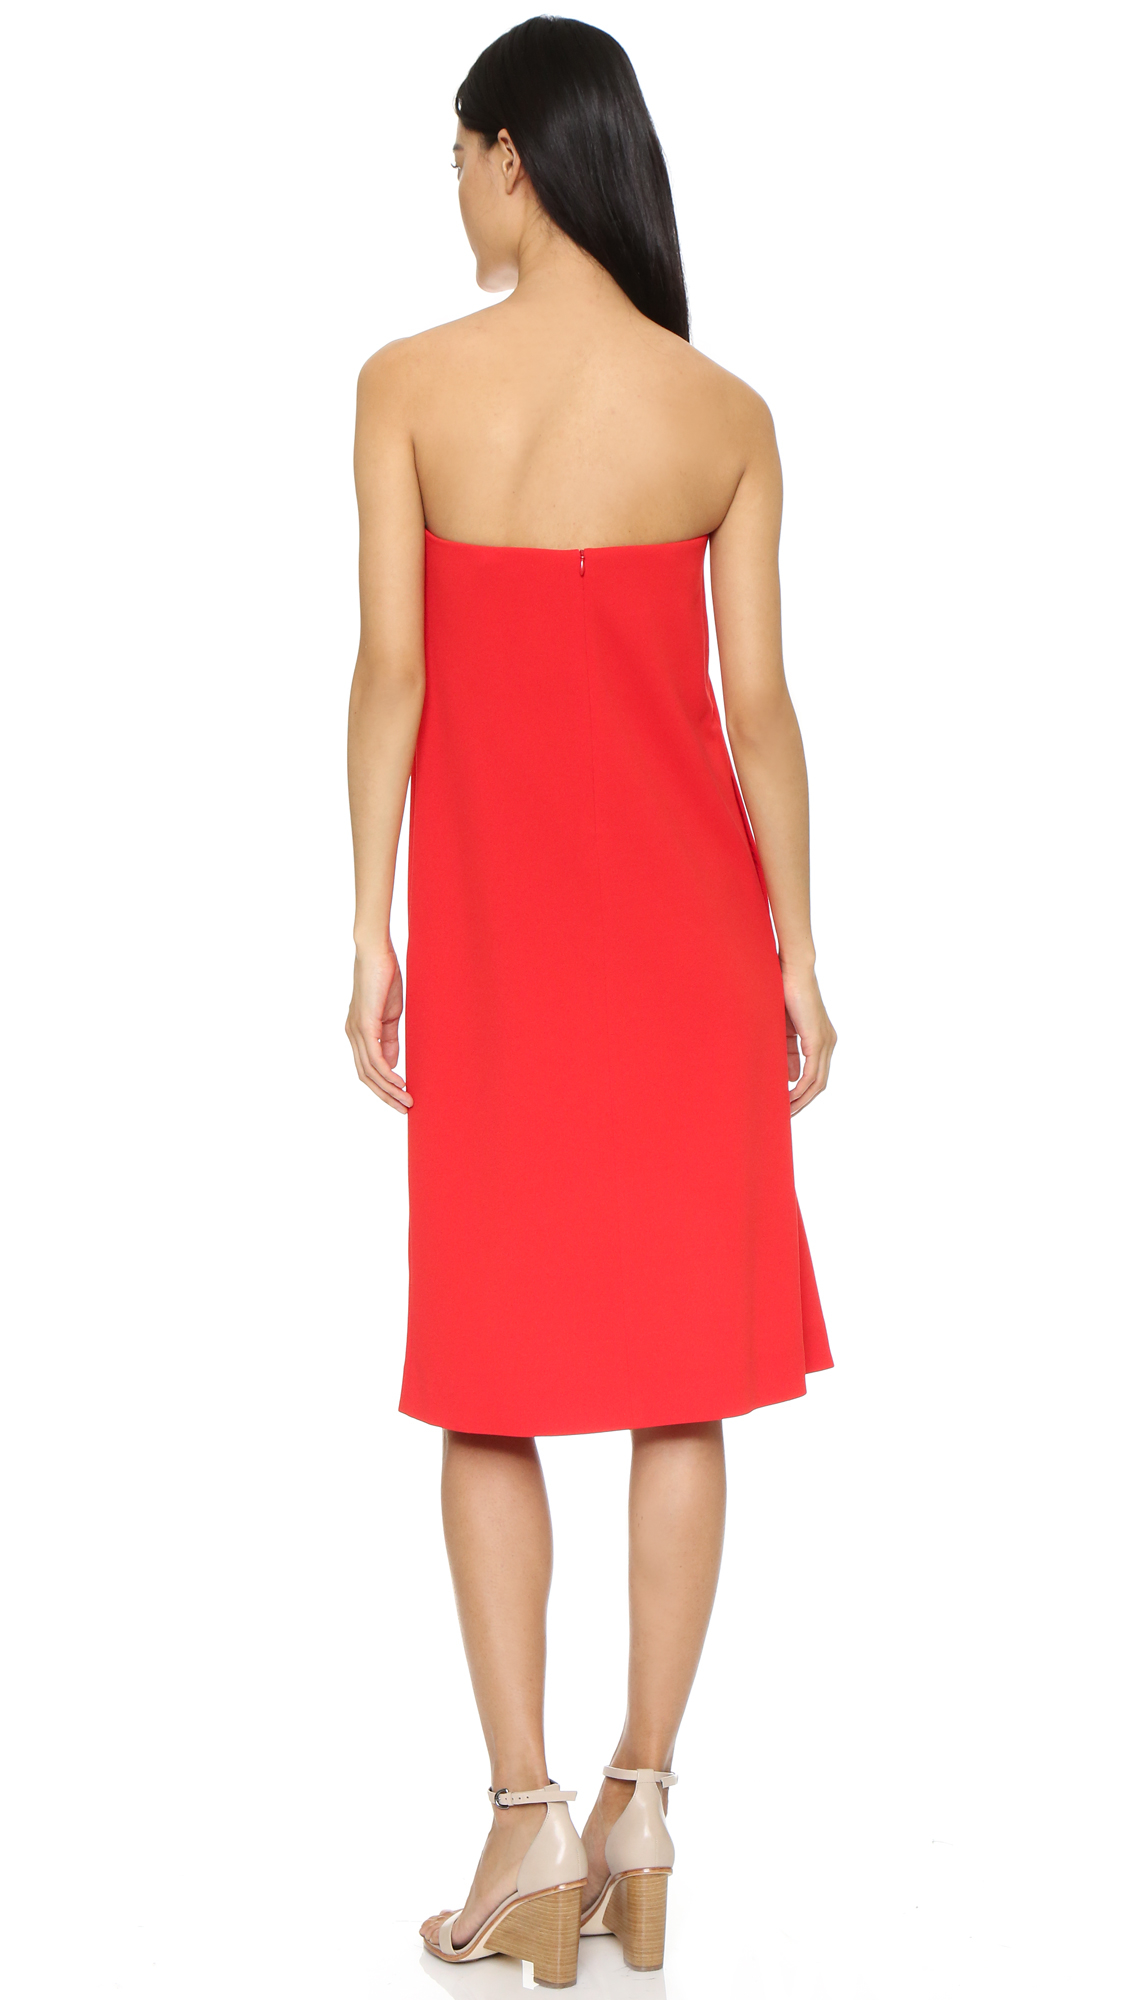 Tibi Structured Strapless Dress in Red - Lyst